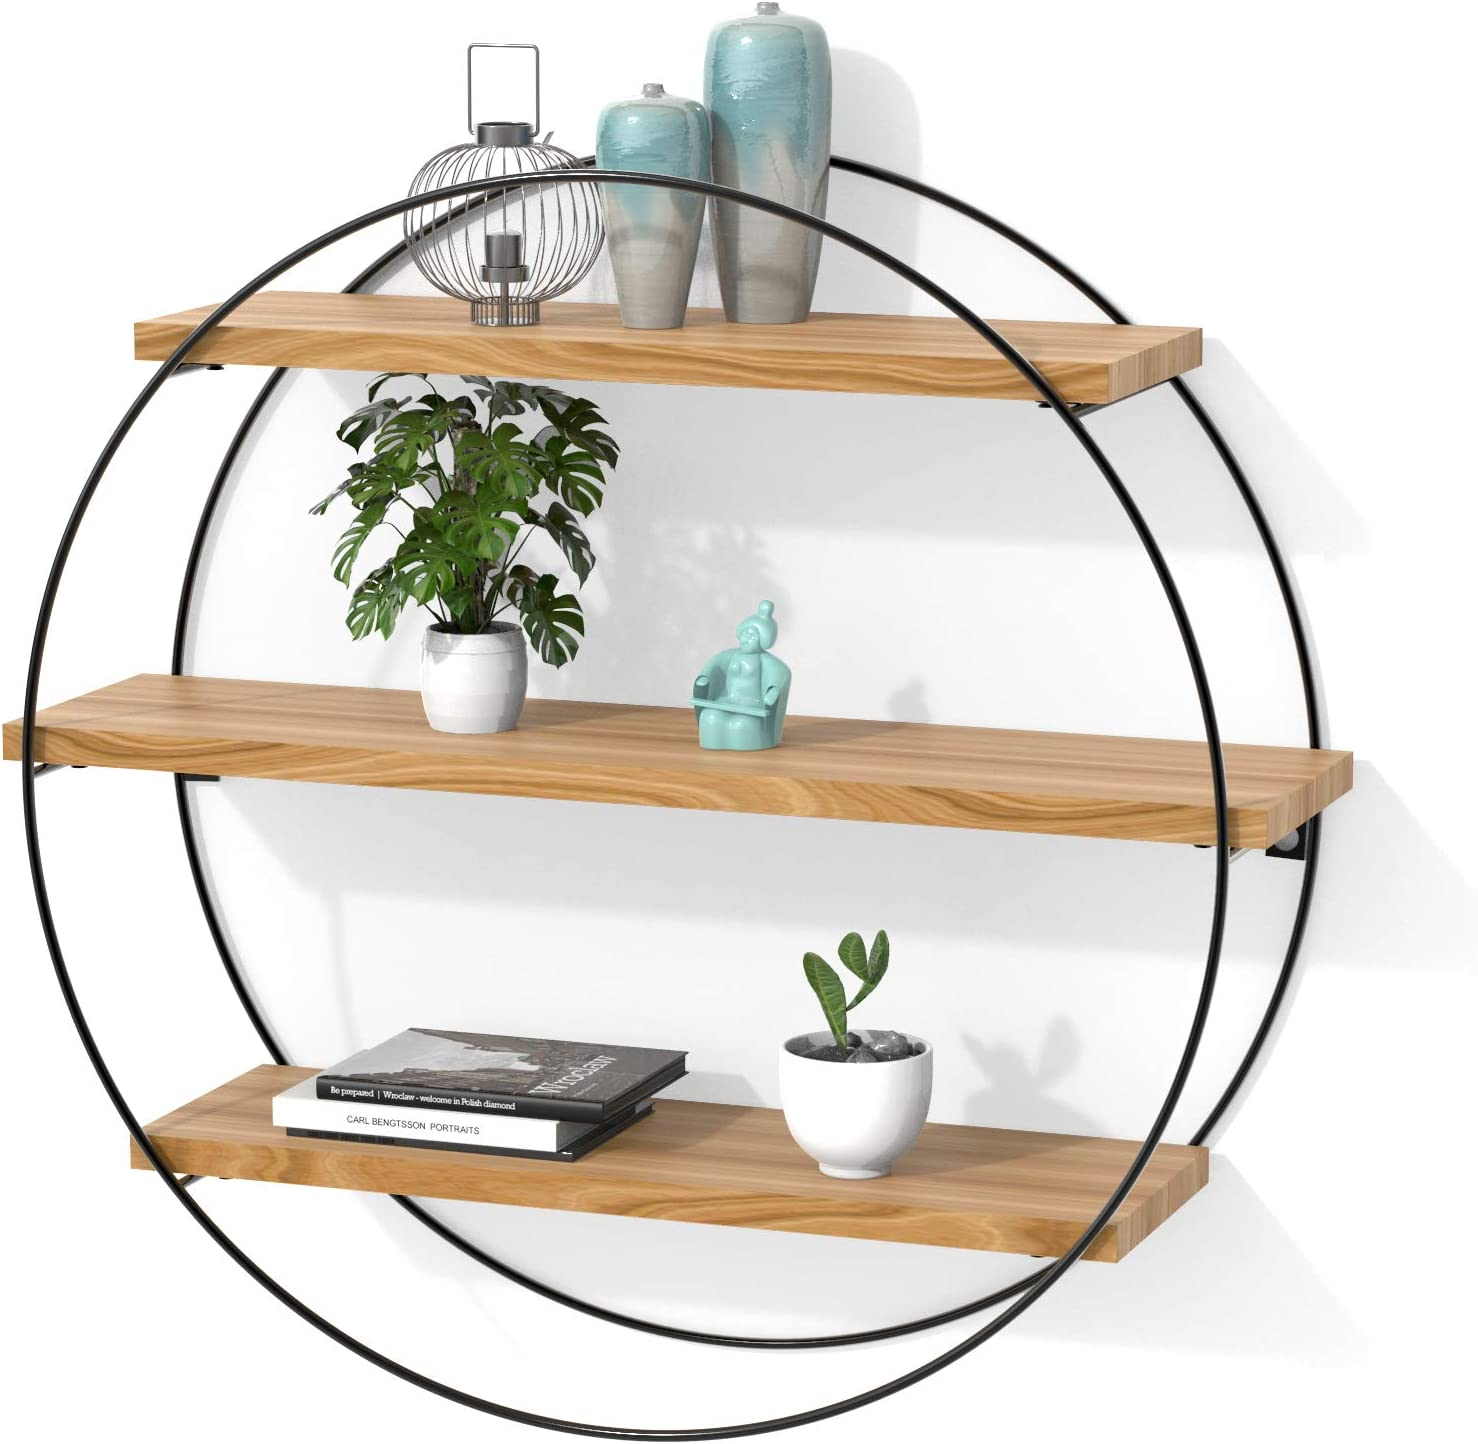 INMAN Floating Shelves for Wall, Rustic Wood Wall Shelves, Farmhouse Decorative Wood Shelves for Bathroom, Bedroom, Kitchen Decor and Storage, Metal Frame, Round Shape